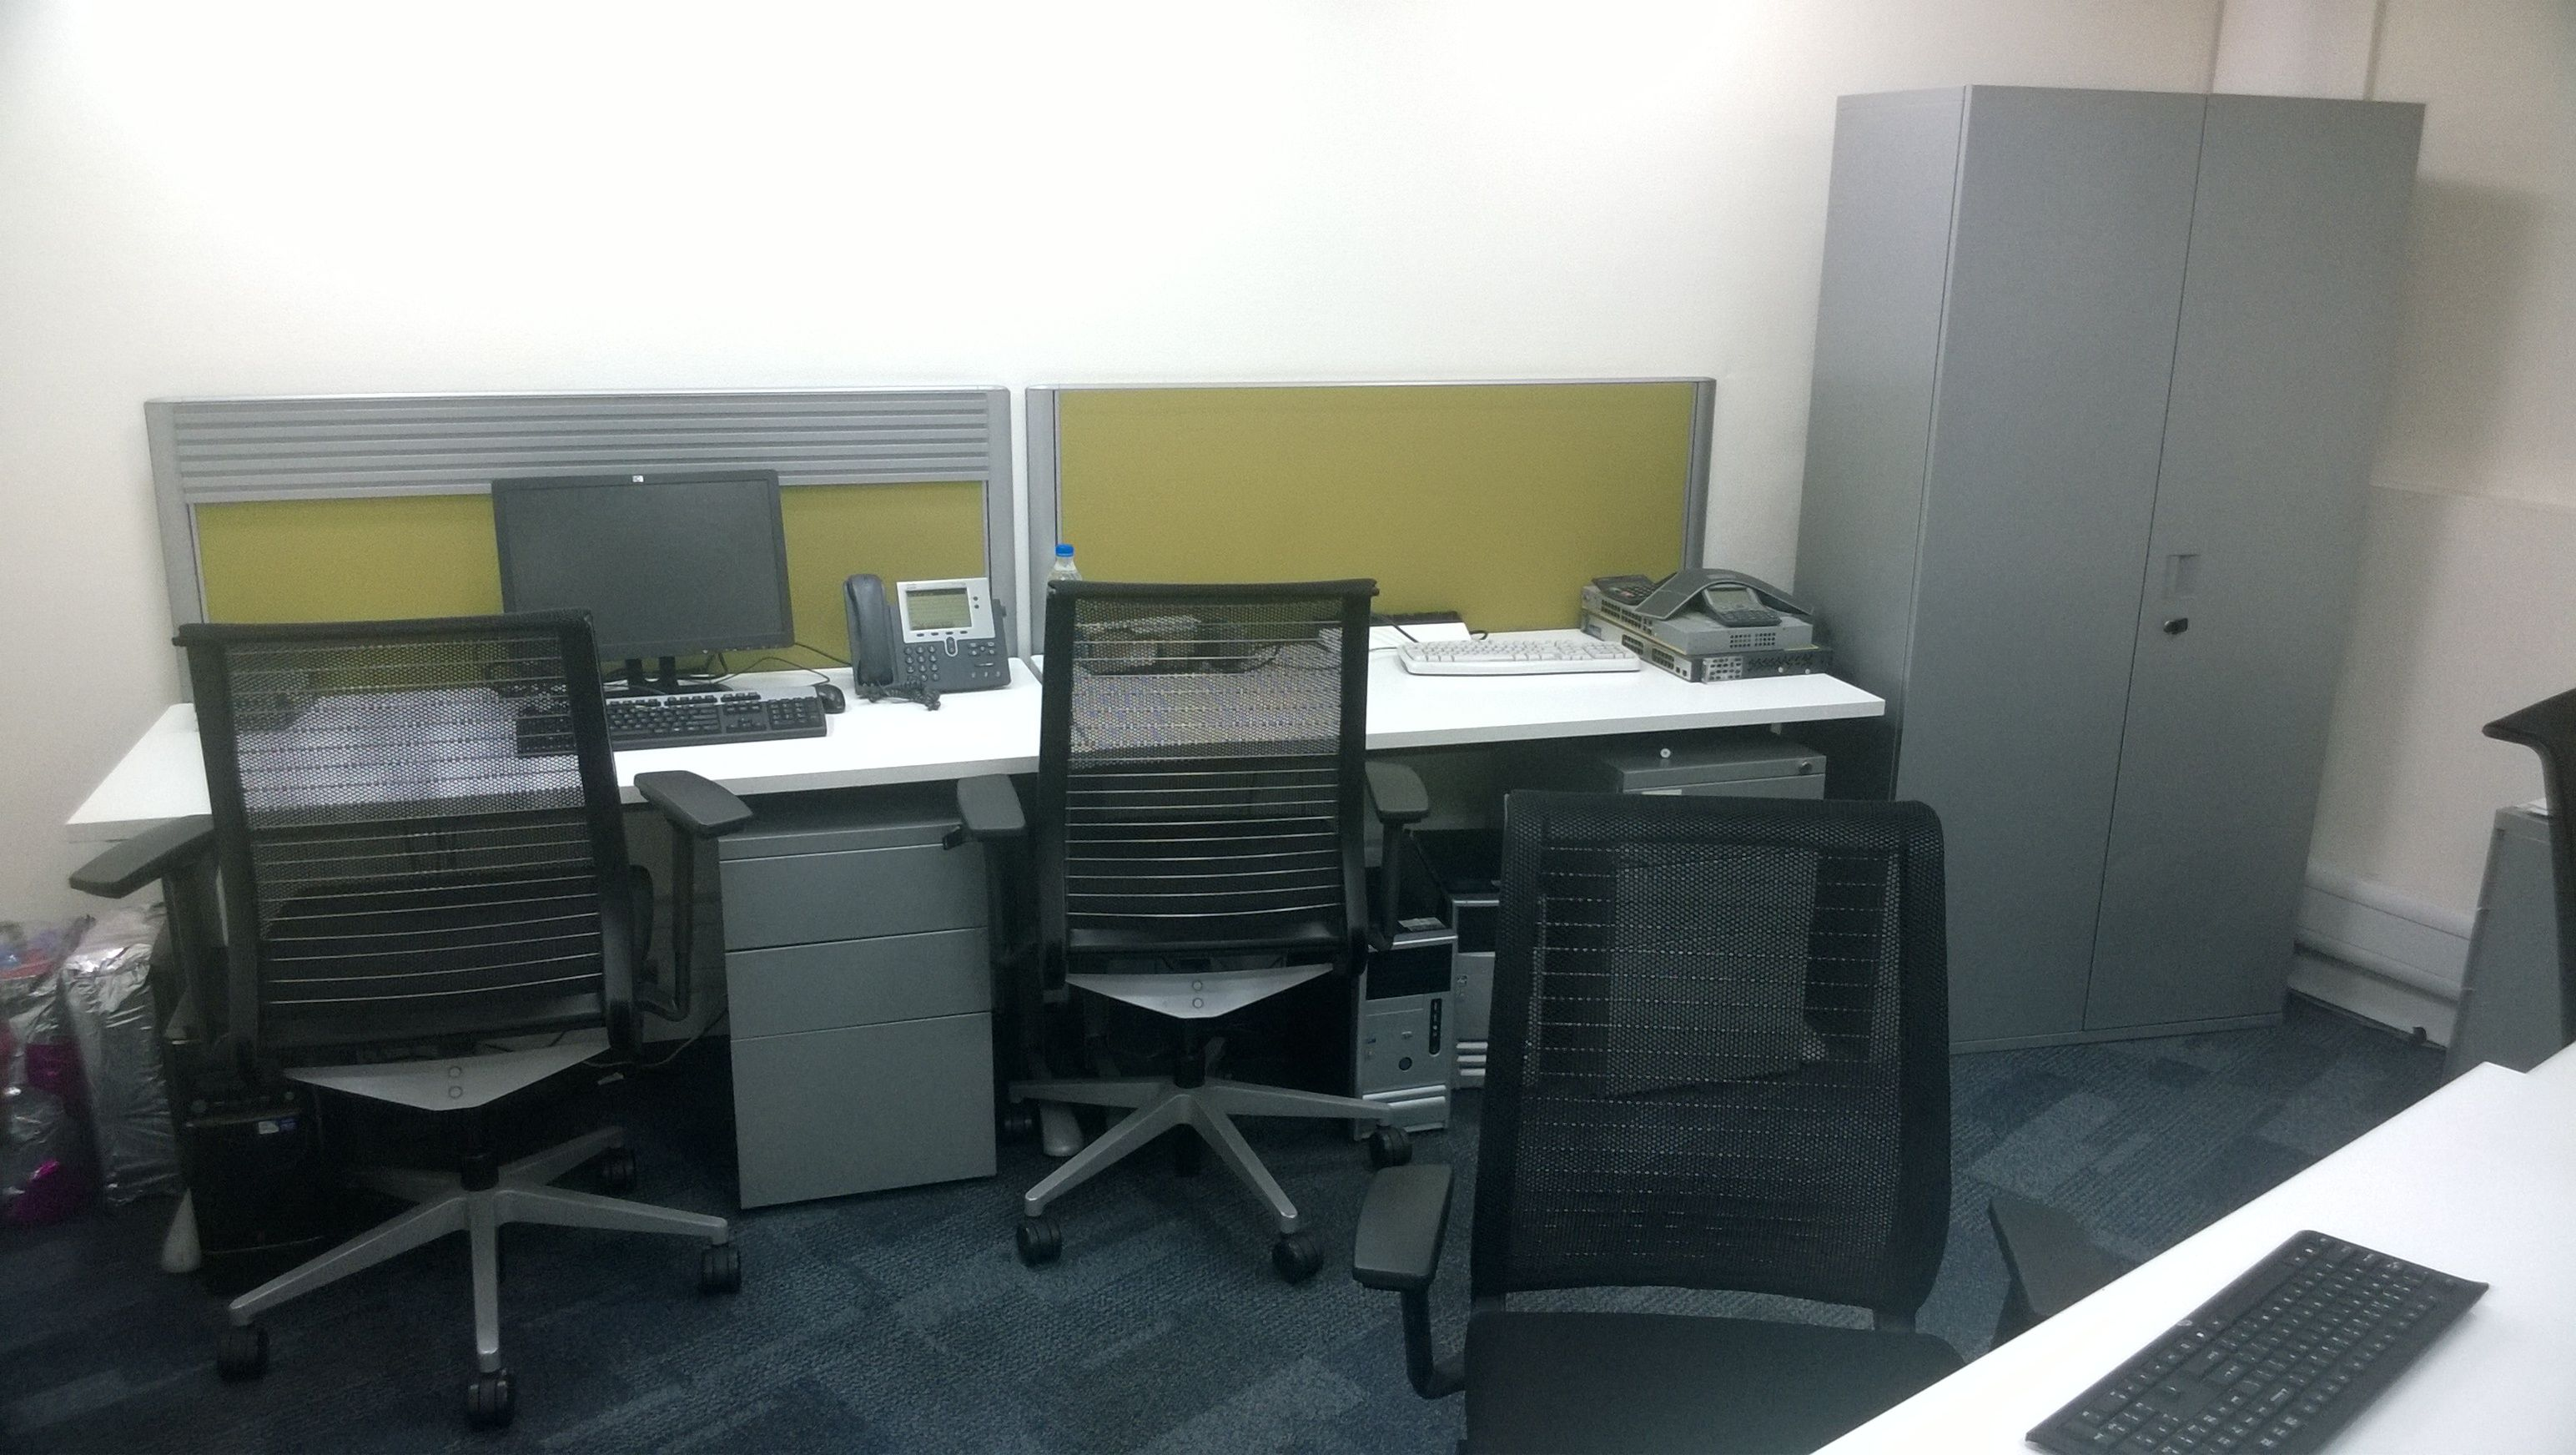 Serviced offices in Connaught Place, New Delhi Prime office space in India at an all inclusive price Full business support. No hidden business centre charges..... http://goo.gl/a4HV14